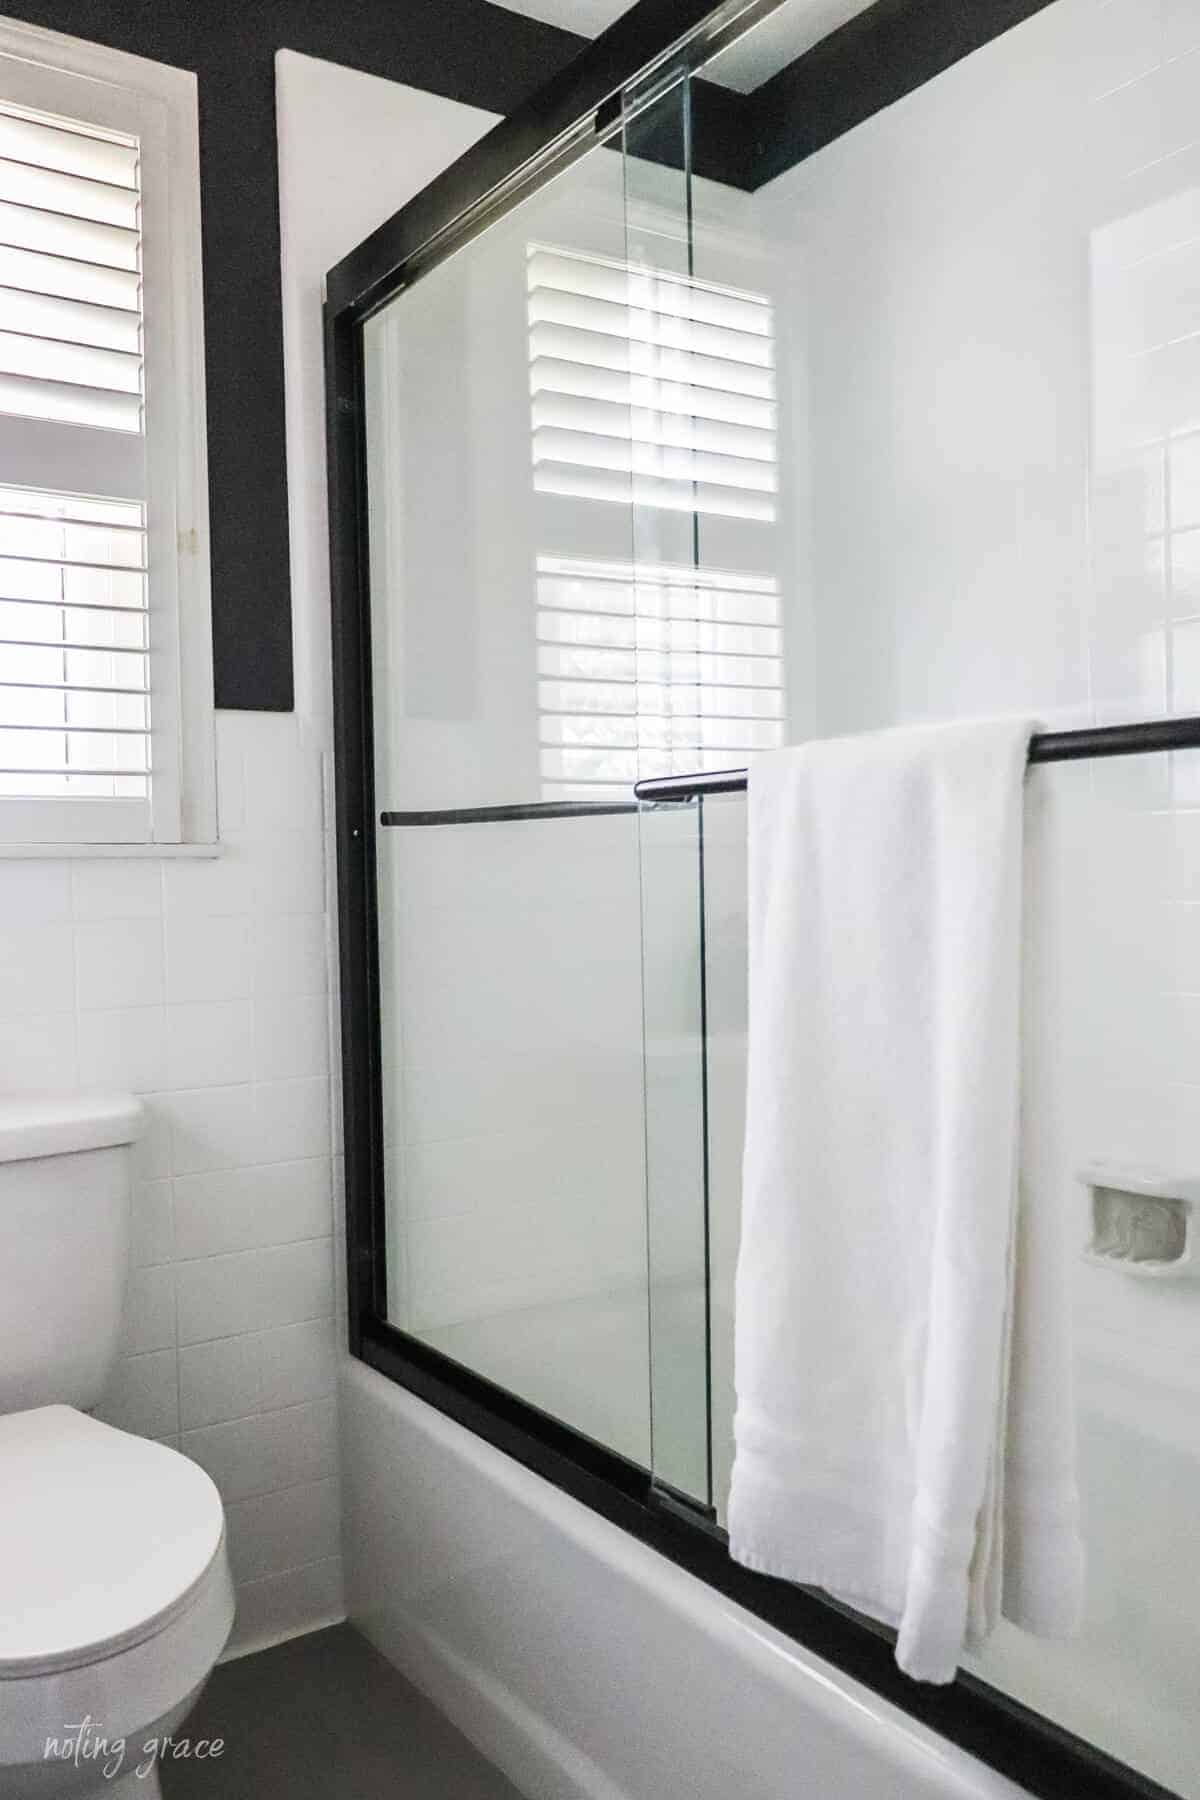 White painted bathtub surround with gray painted floors and black shower doors